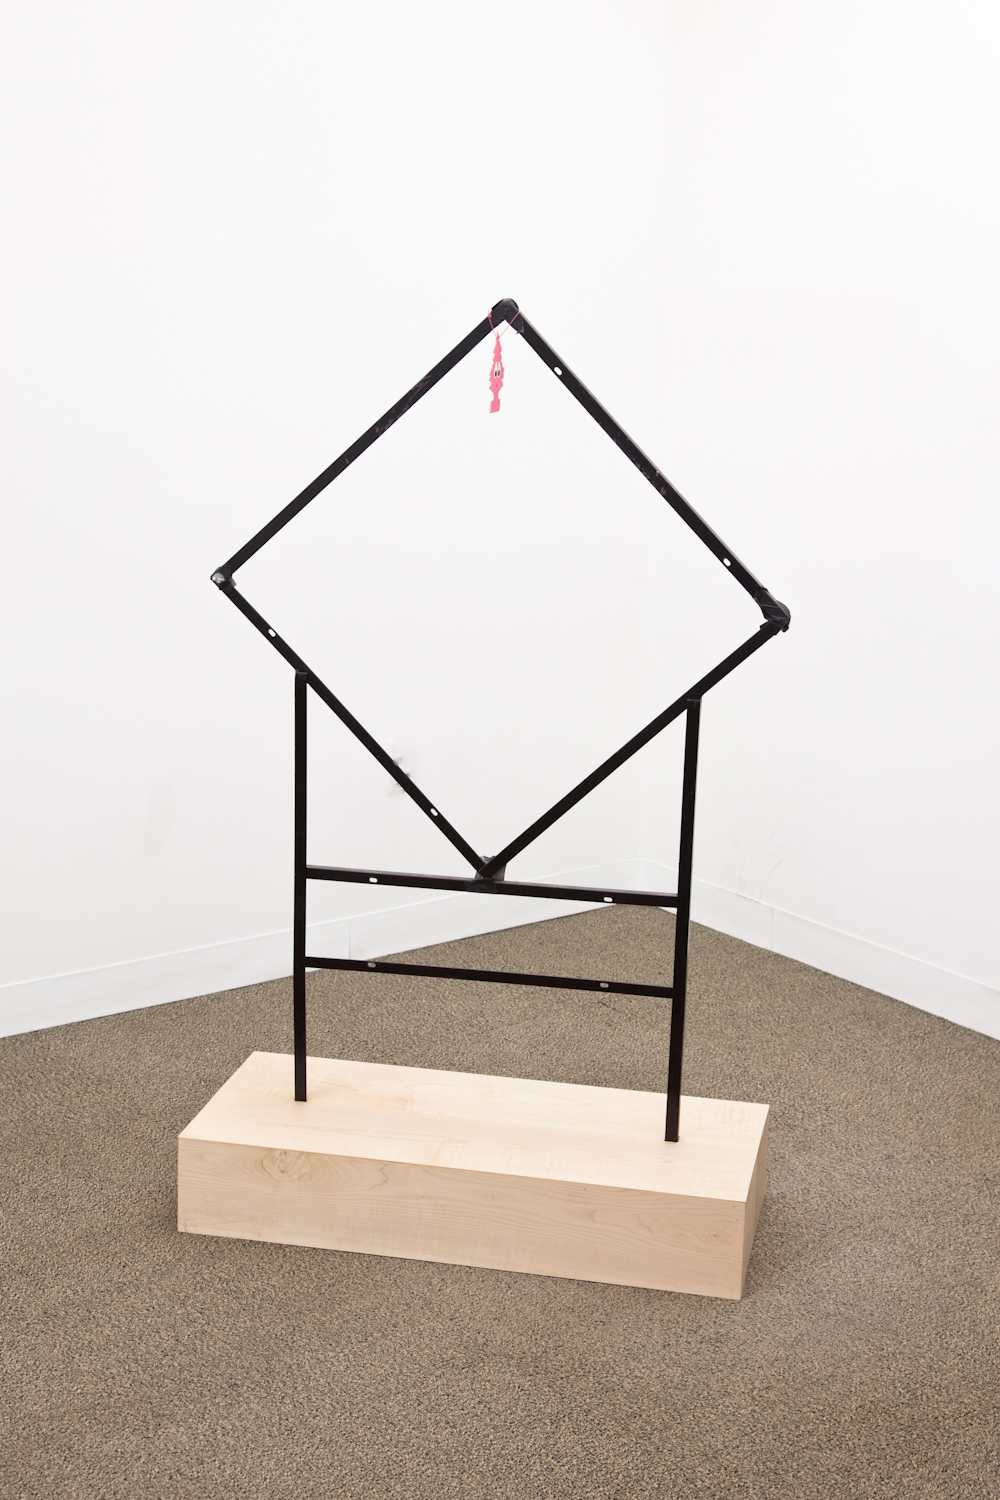 Peter Sutherland  Foreclosed  2012 Wood, steel, tape, enamel 57 x 34 x 14.5 inches